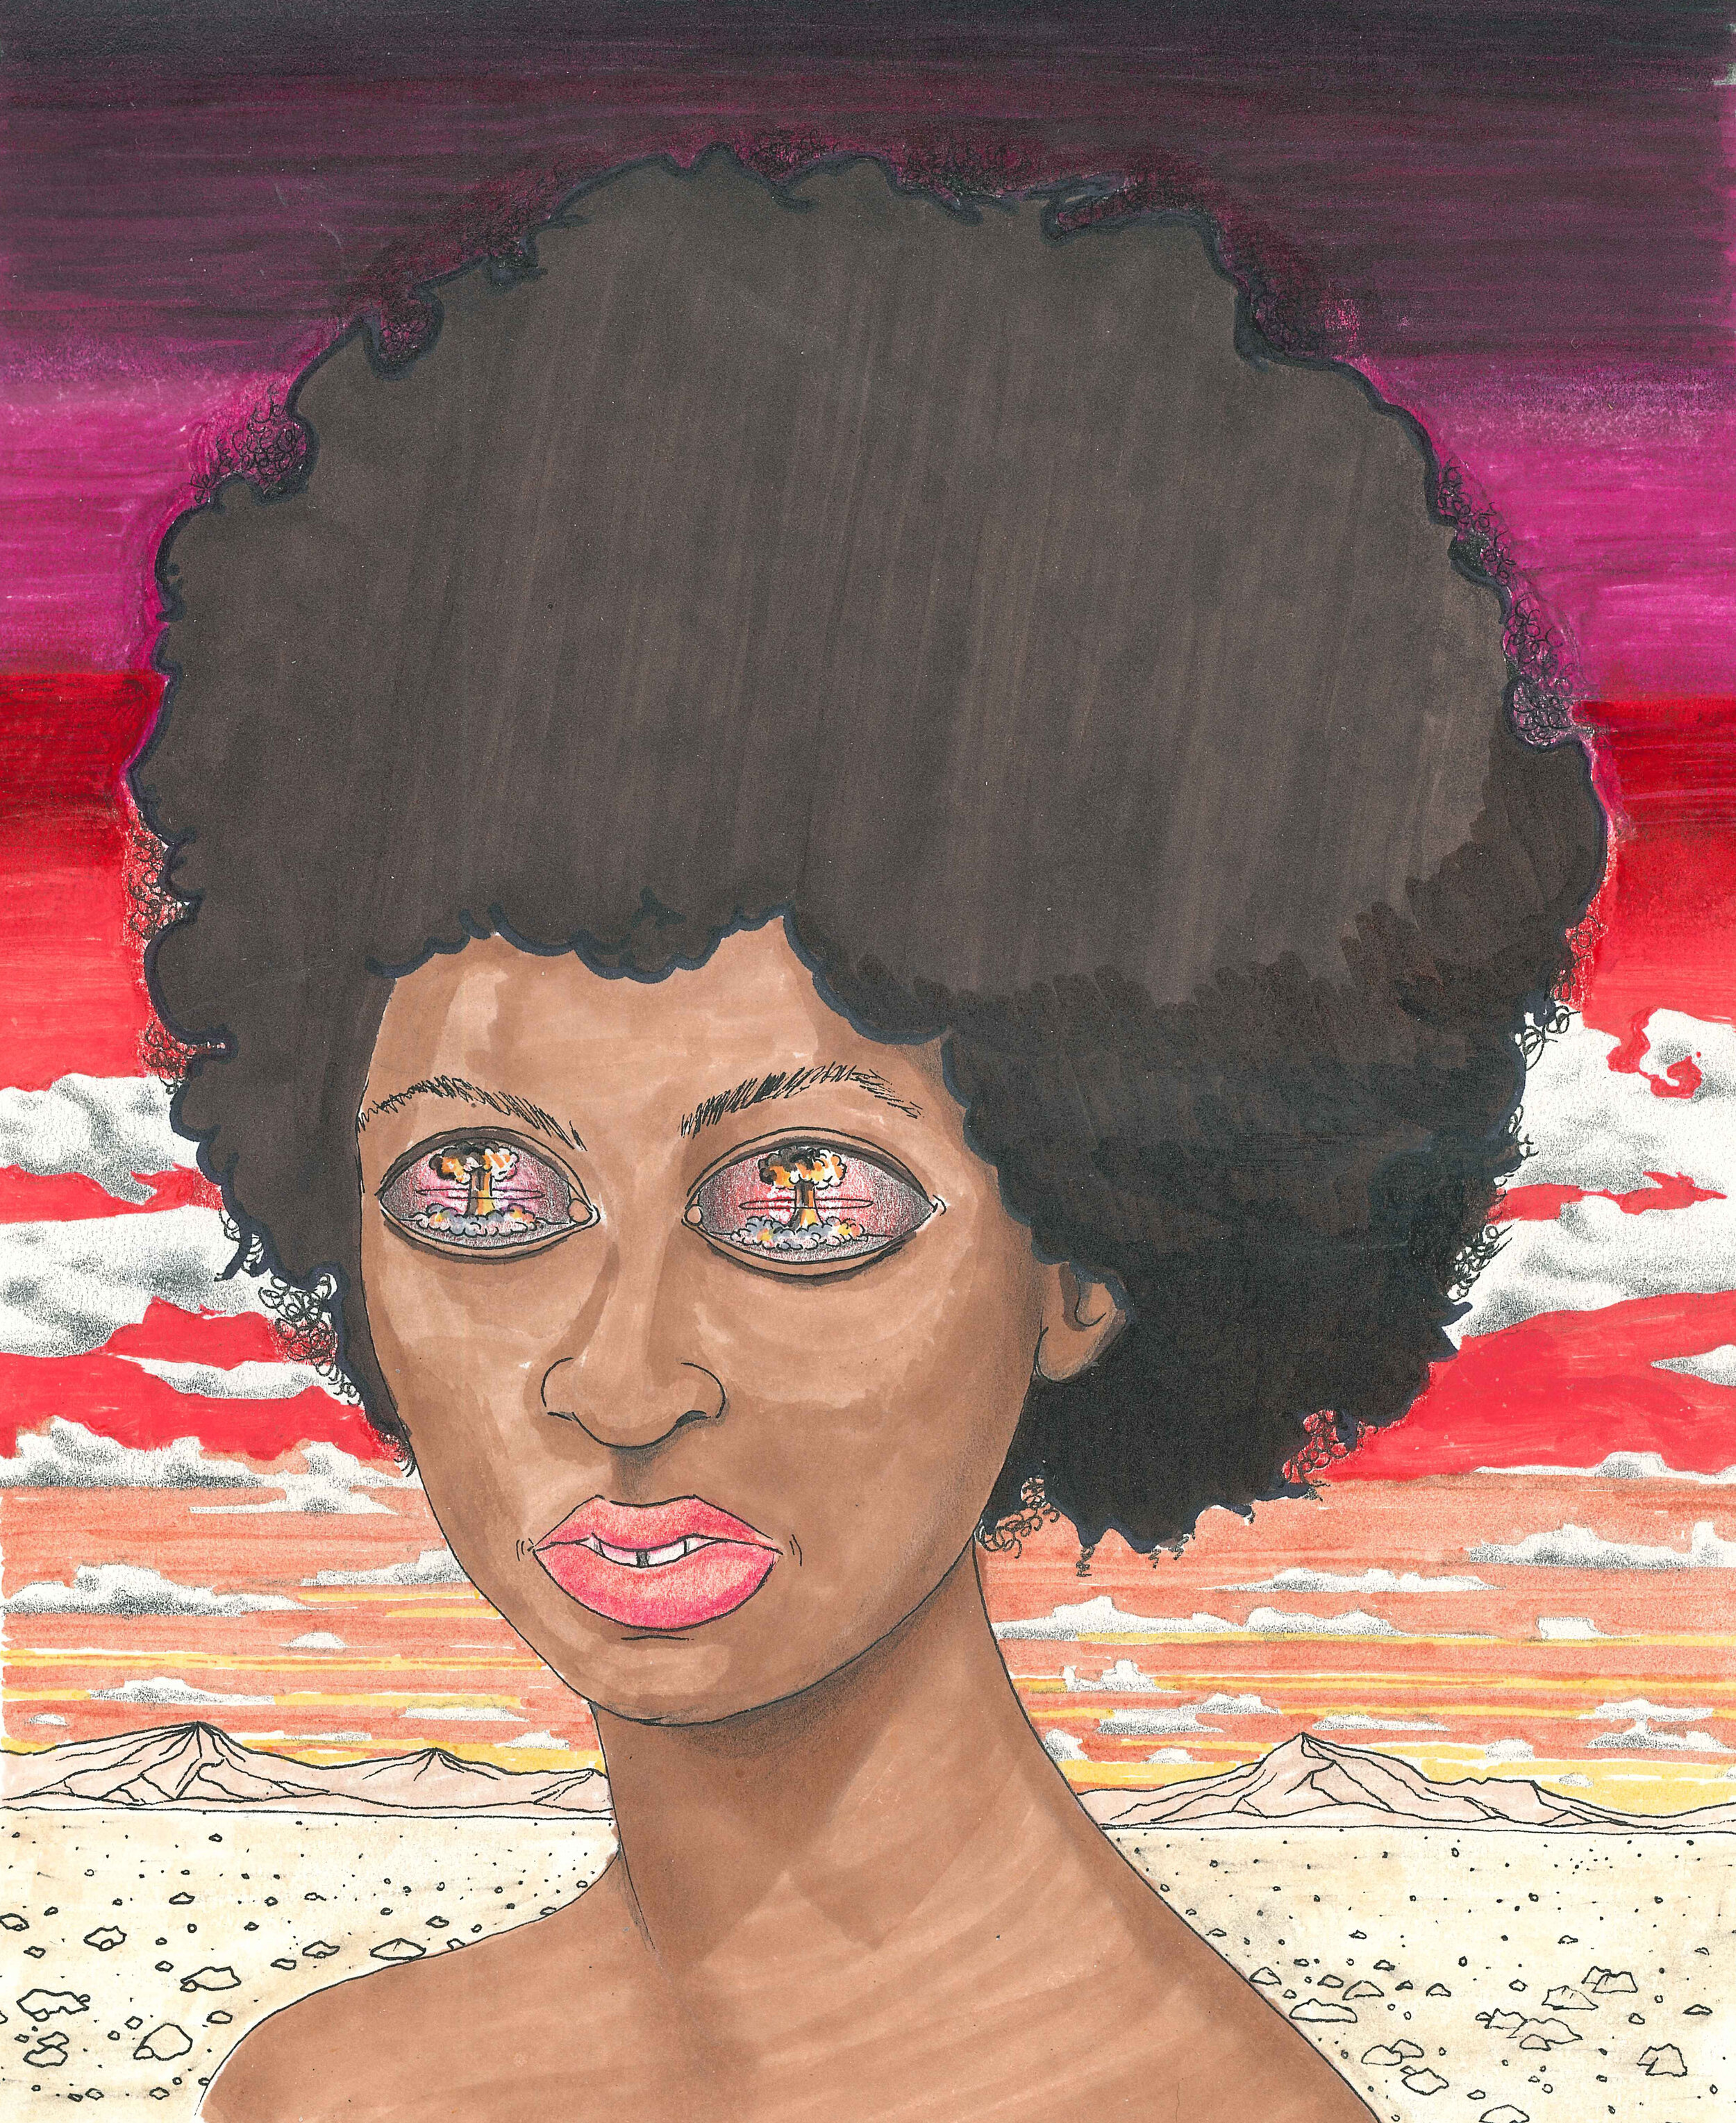 Anticipation (Afrogirl).  2018. Ink, Marker, Colored Pencil on Paper. Available.